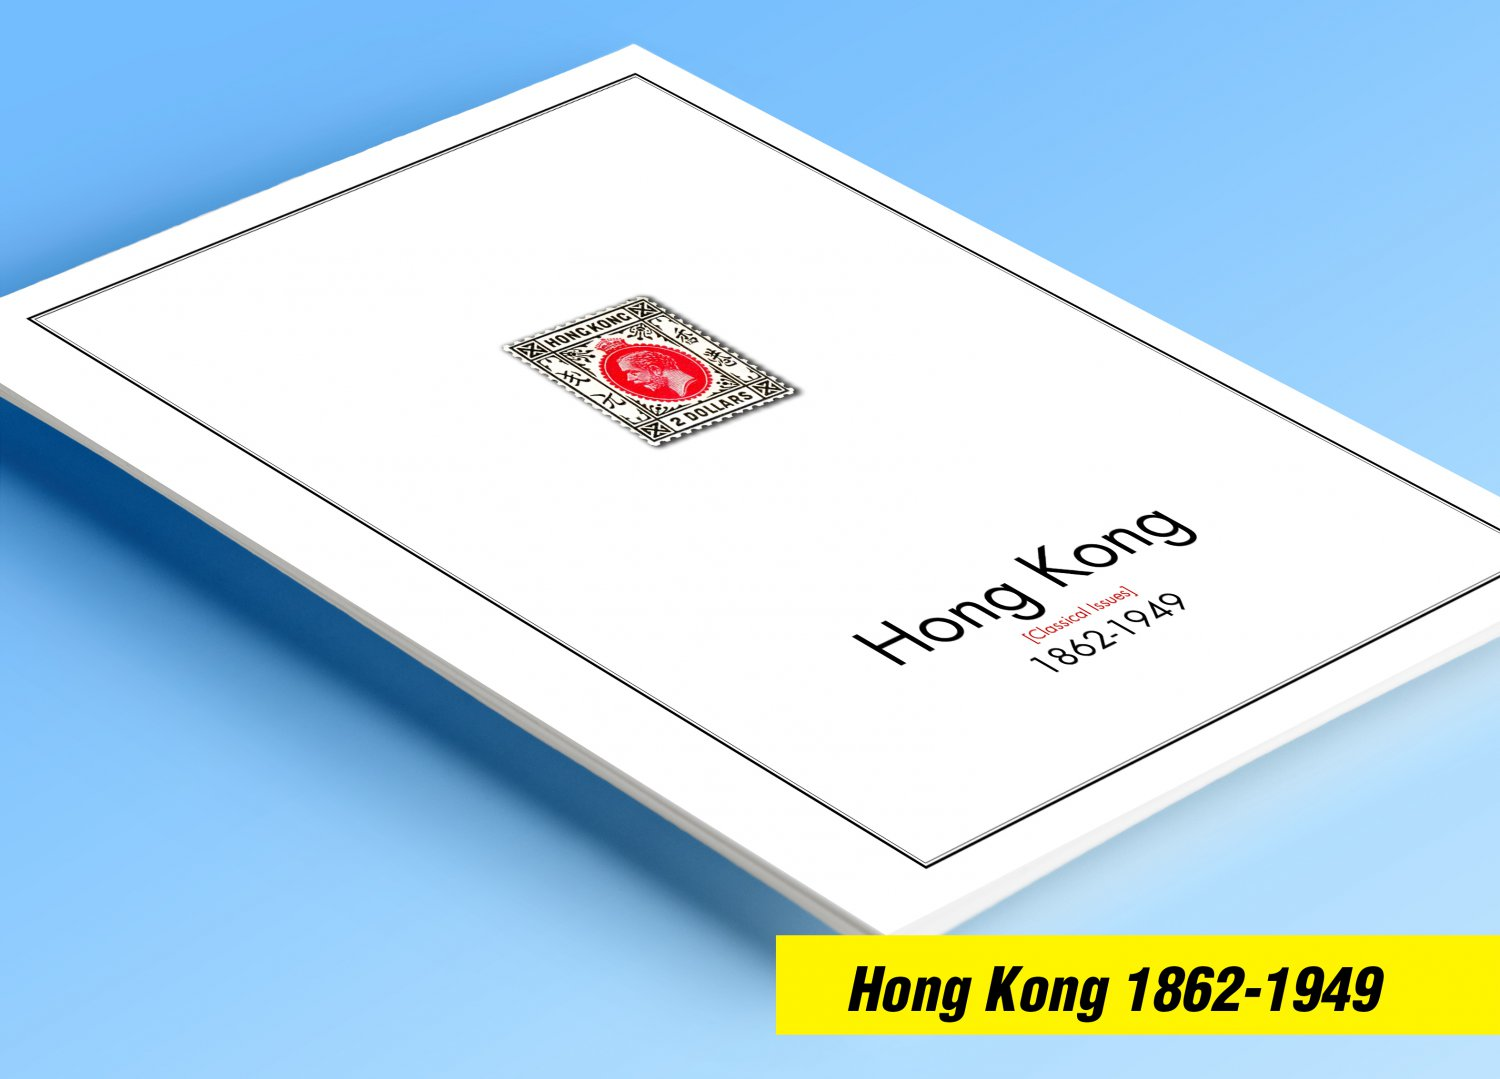 COLOR PRINTED HONG KONG [CLASS.] 1862-1949 STAMP ALBUM PAGES (13 illustrated pages)